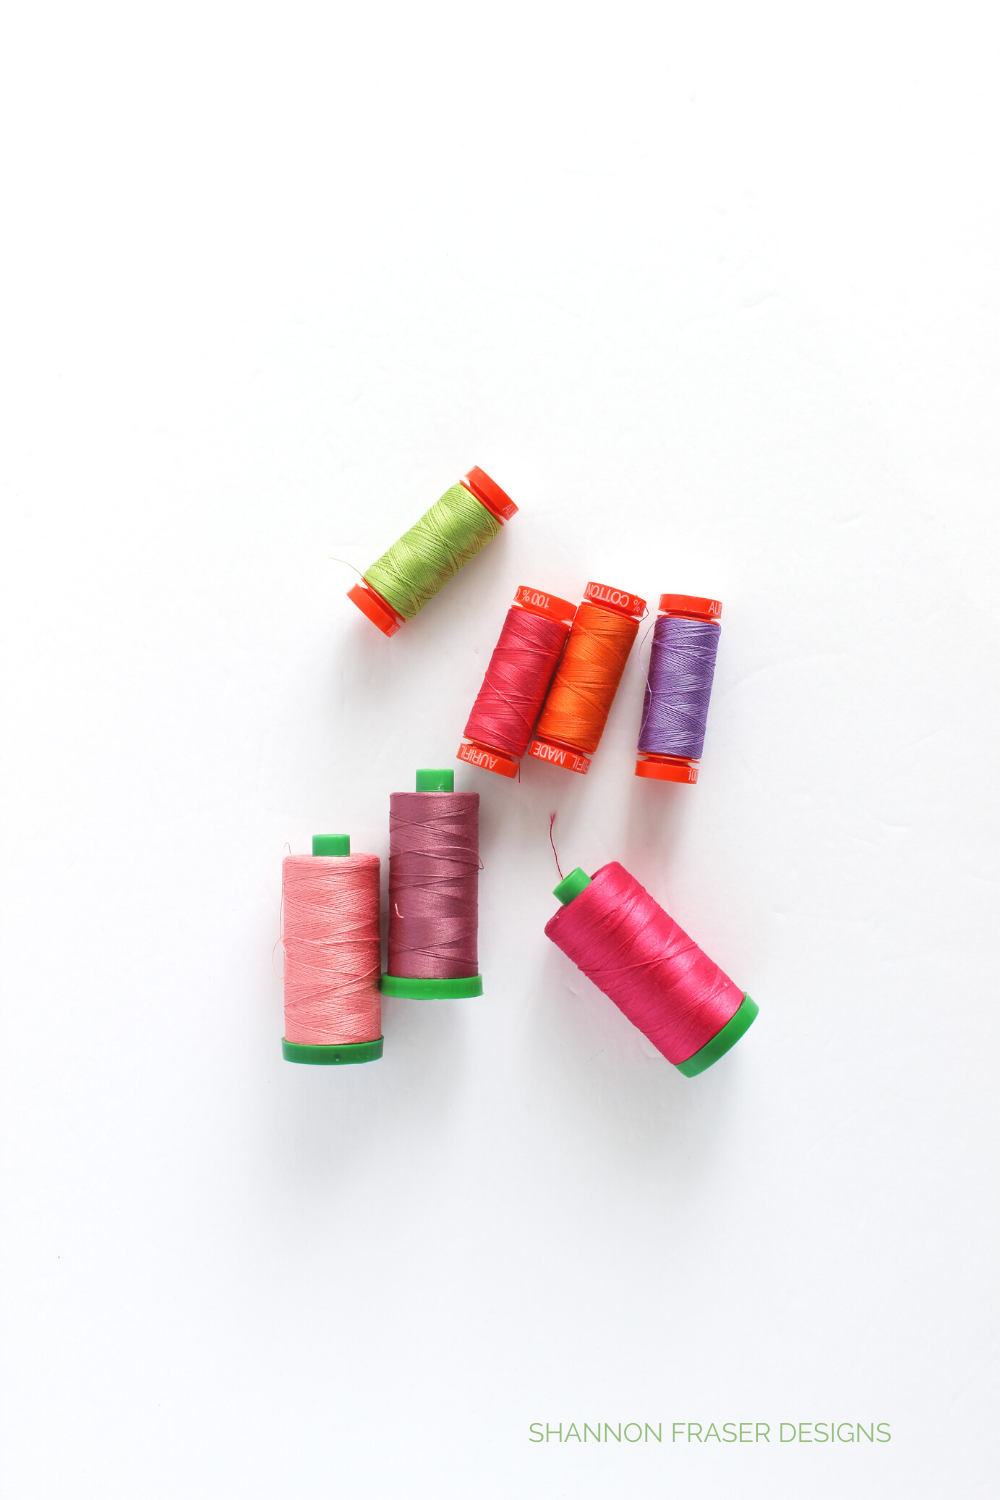 Small and large spools of Aurifil Thread in: green, red, purple, fuchsia, pink and mauve | Why I Love Aurifil Thread | Shannon Fraser Designs #thread